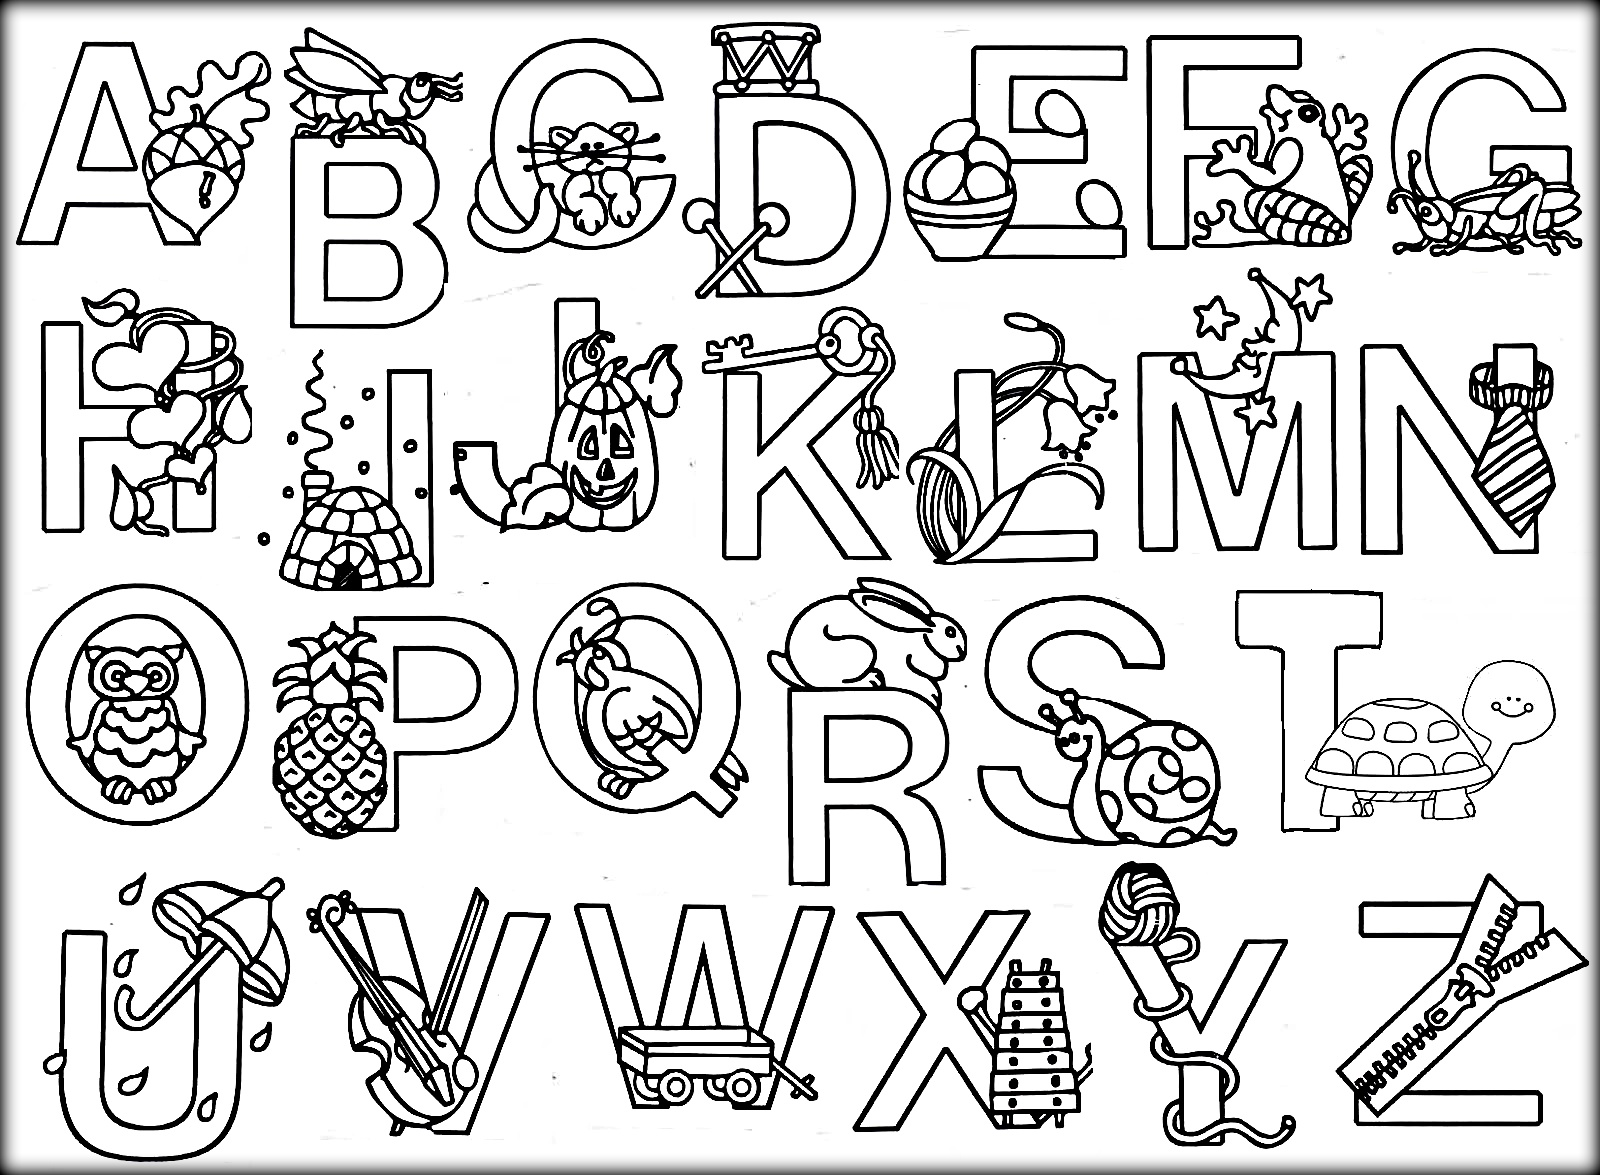 coloring letters free printable alphabet coloring pages for kids 123 kids coloring letters 1 3